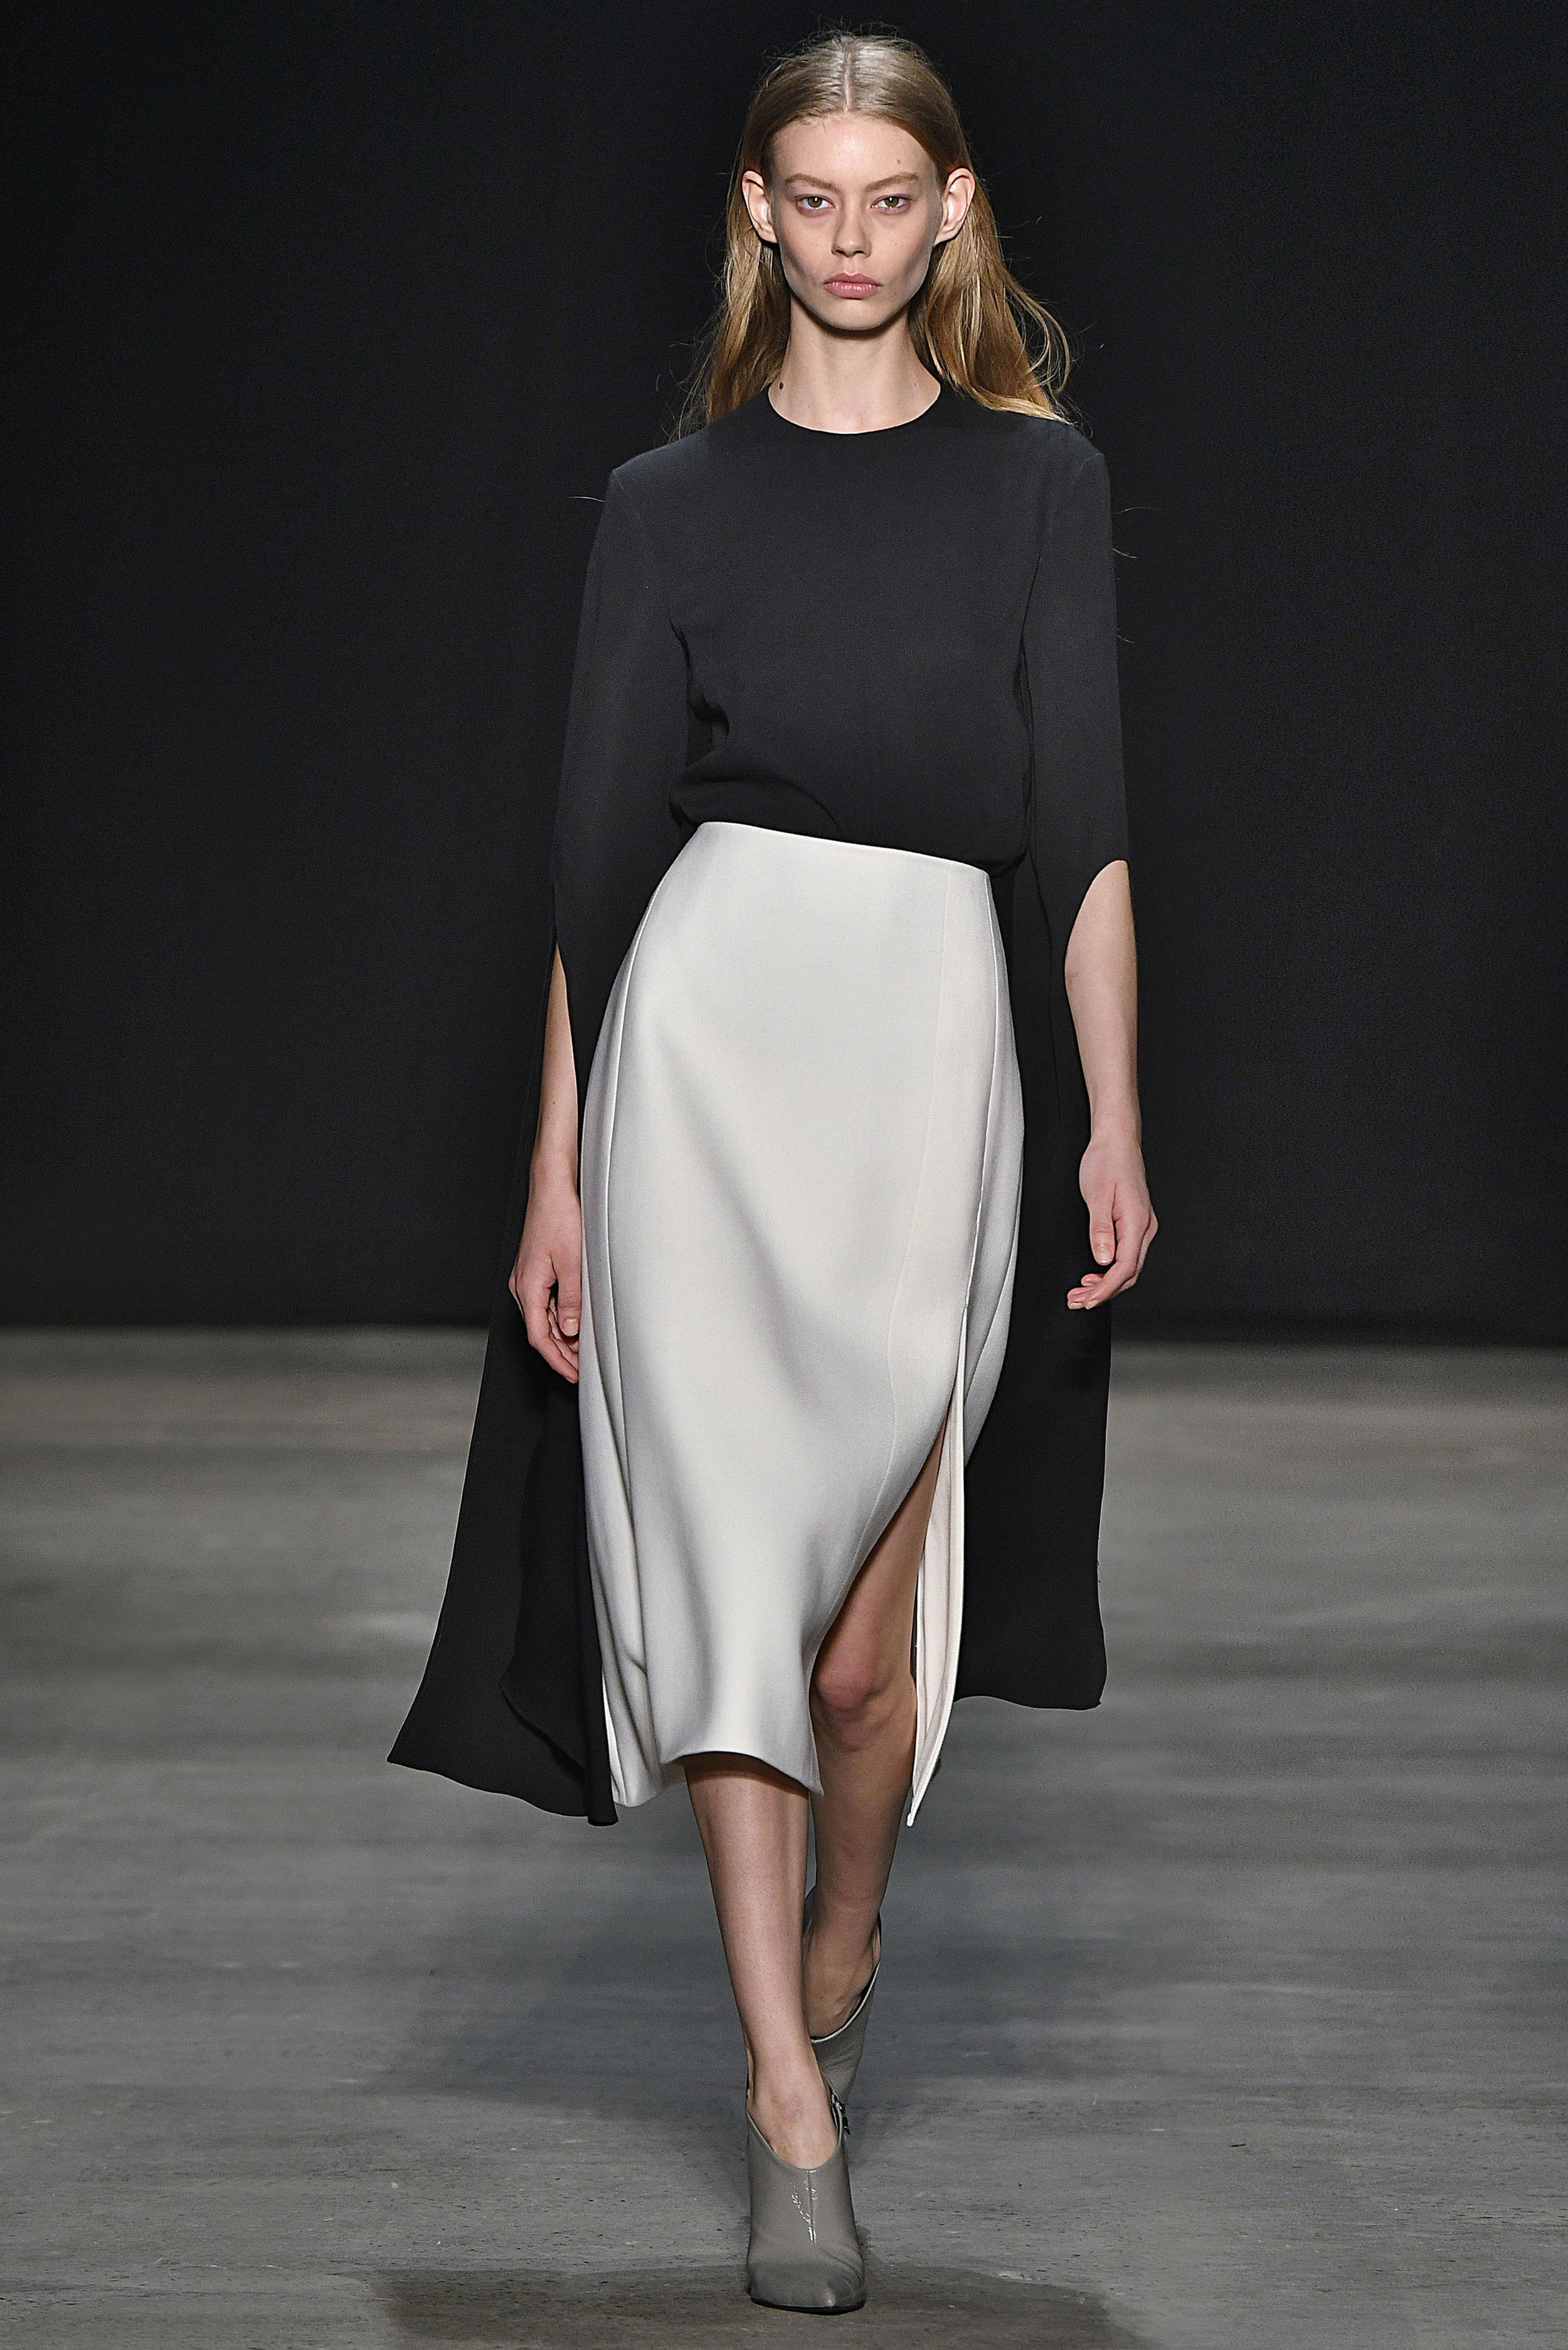 Narciso Rodriguez Fall 2017 collection. Black silk crepe top with ivory wool twill skirt.